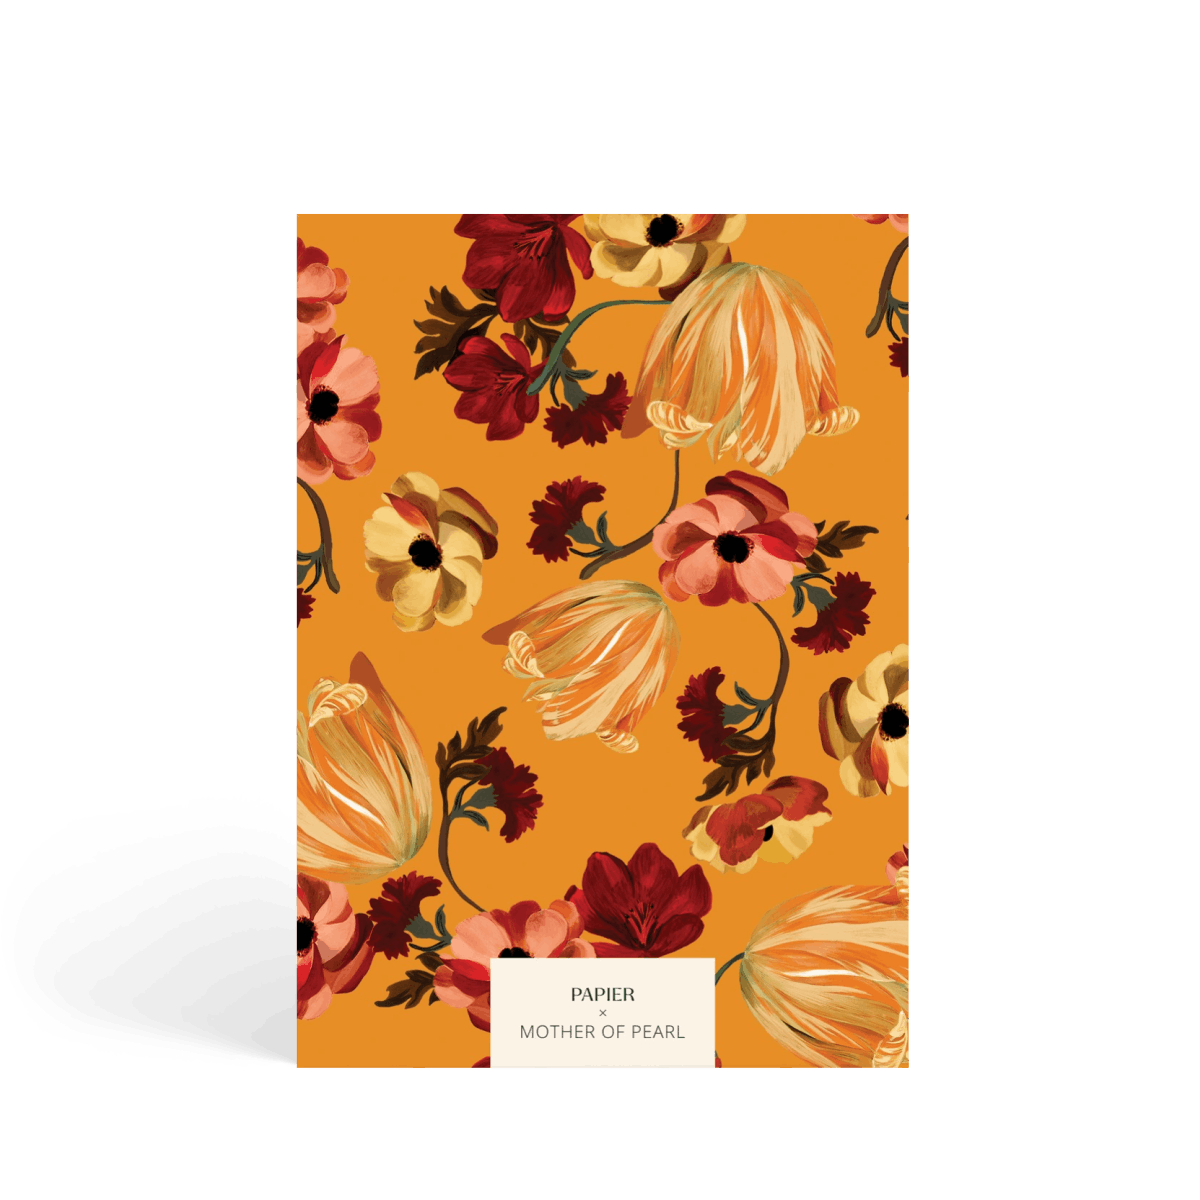 Https%3a%2f%2fwww.papier.com%2fproduct image%2f45292%2f5%2fautumn bloom 11237 rueckseite 1535019923.png?ixlib=rb 1.1